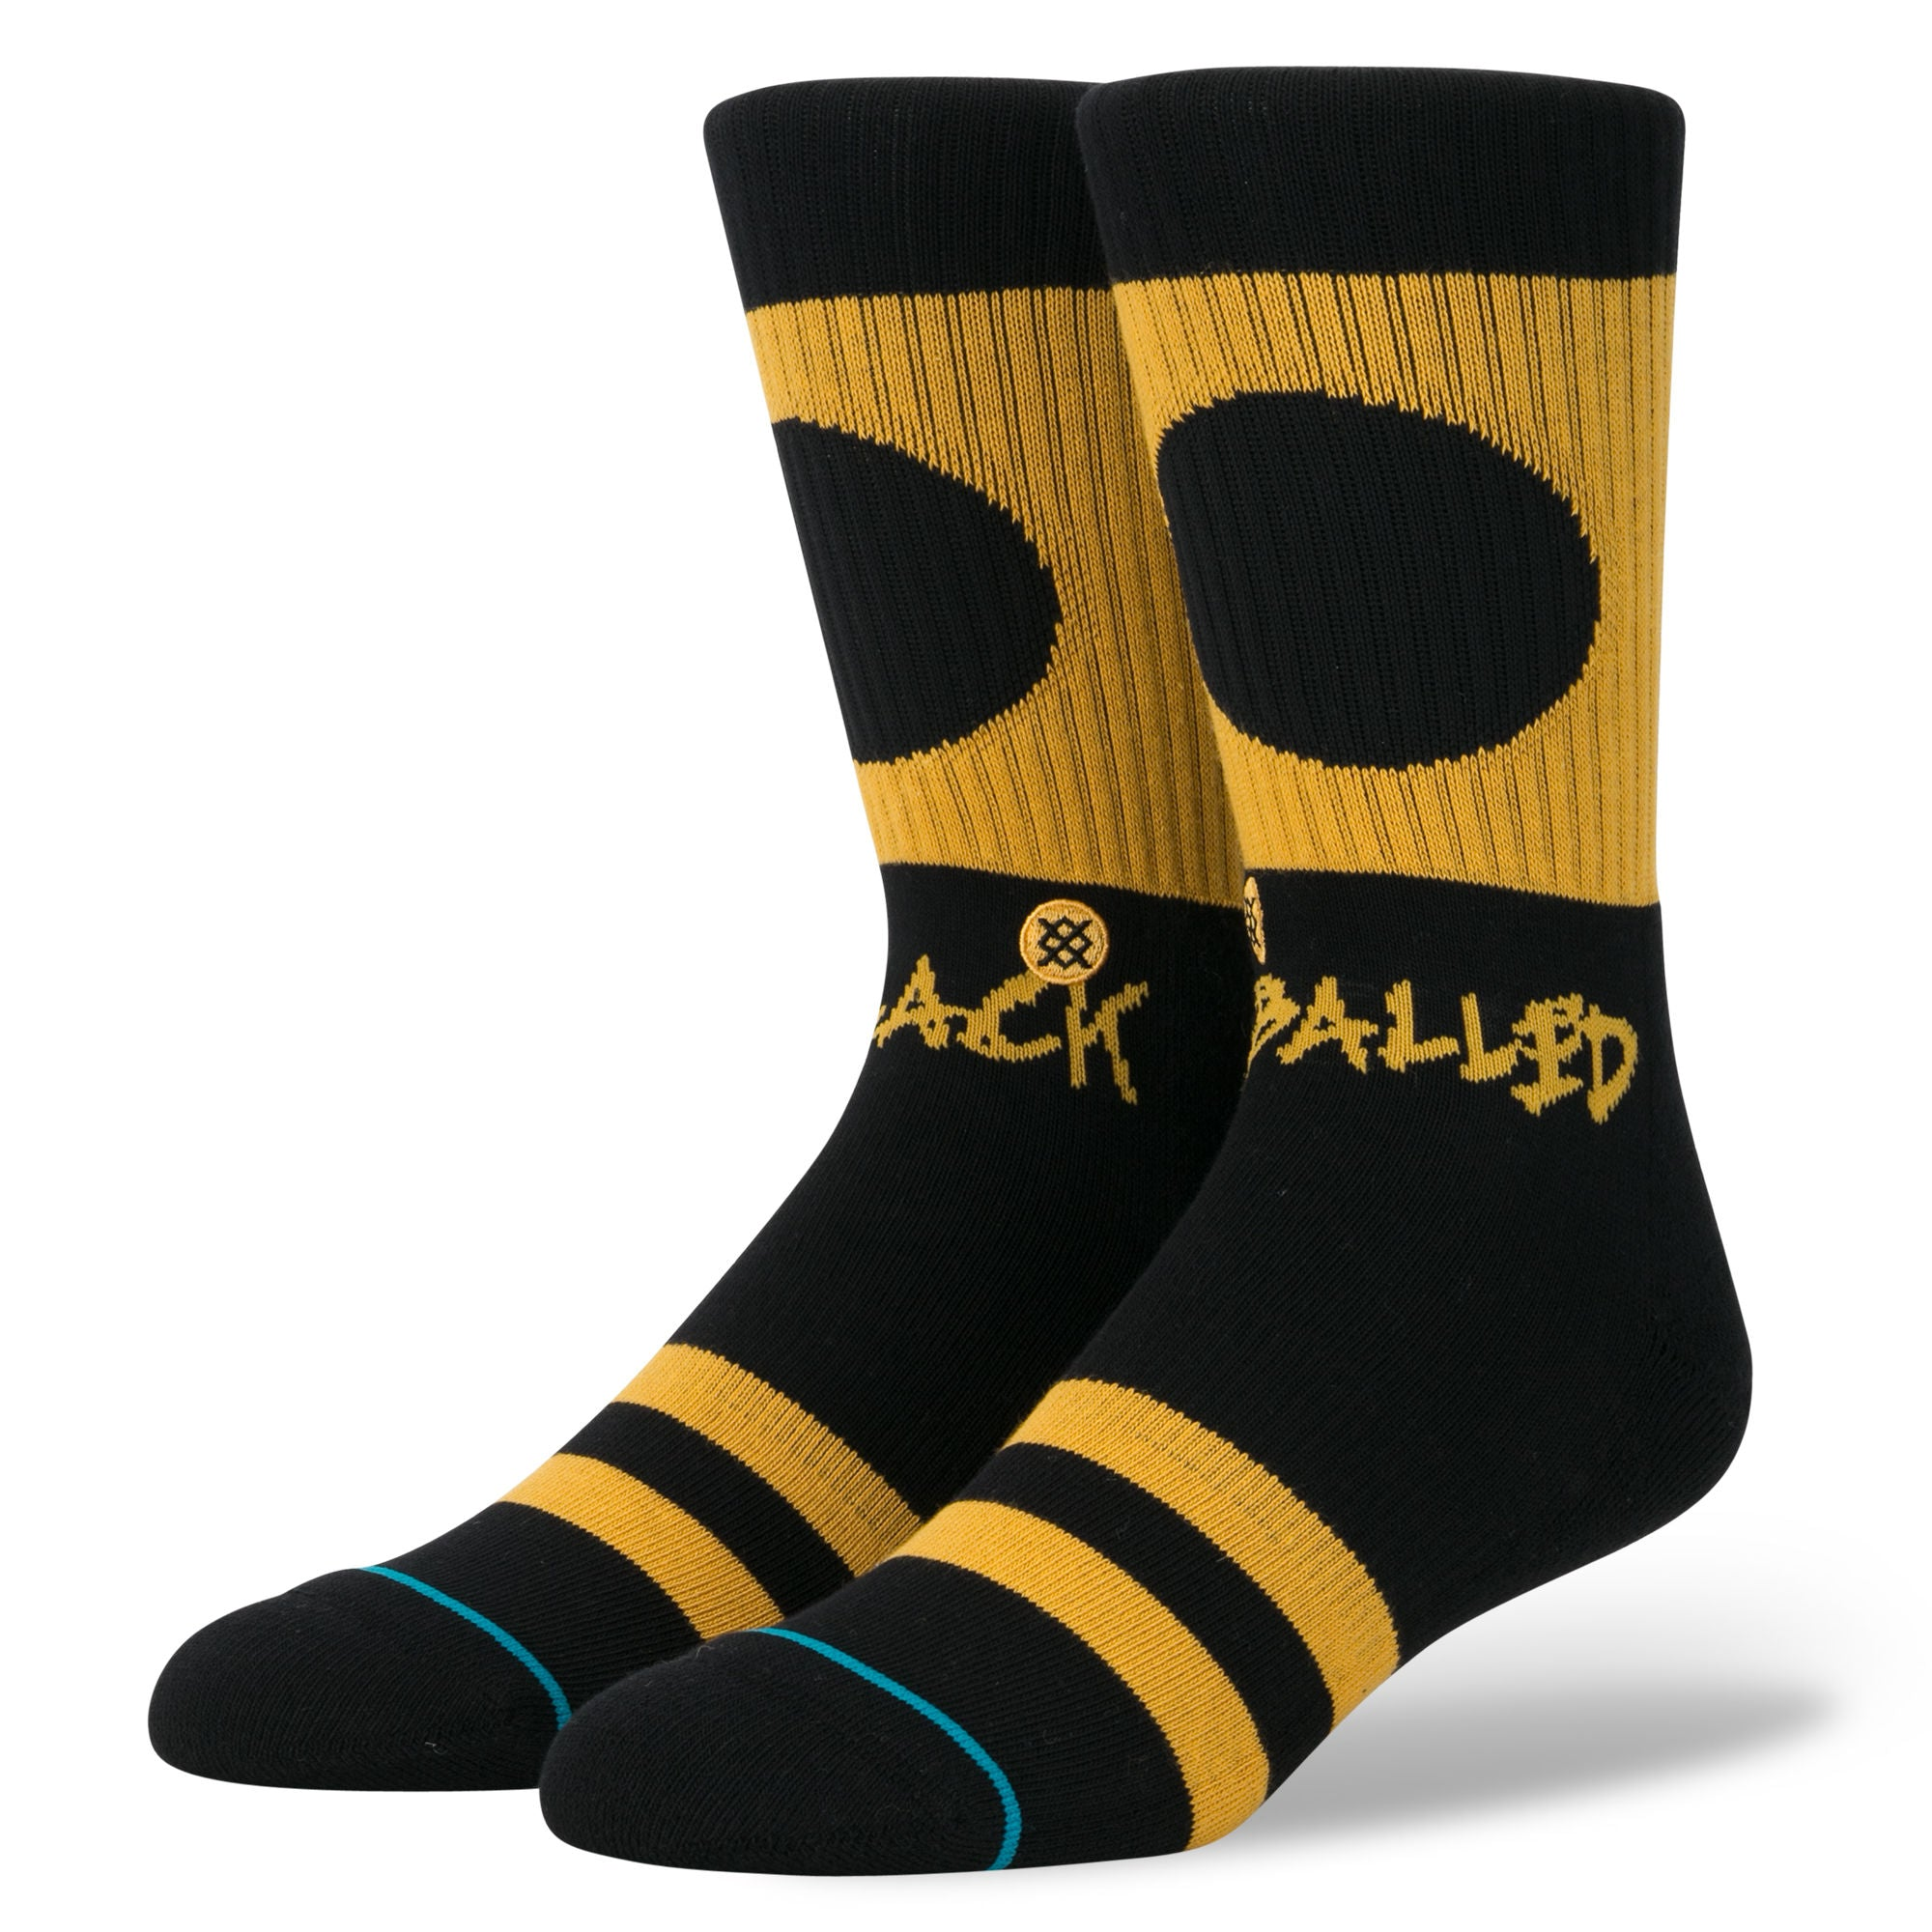 Stance Black Balled Socks | Stance Men's Socks